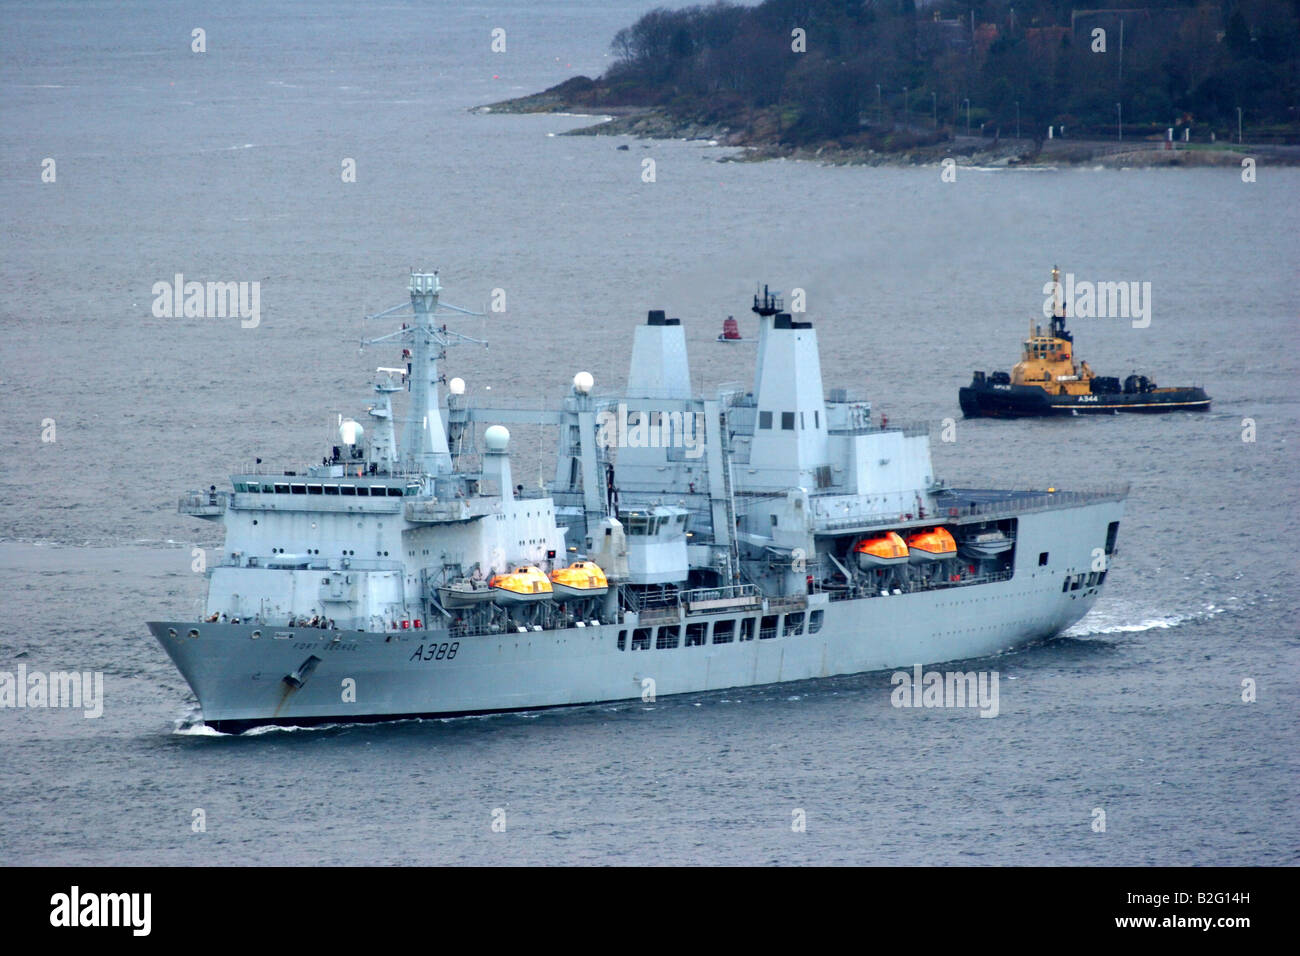 RFA Fort George A388 is a combined fleet stores ship and tanker of the Royal Fleet Auxiliary - Stock Image